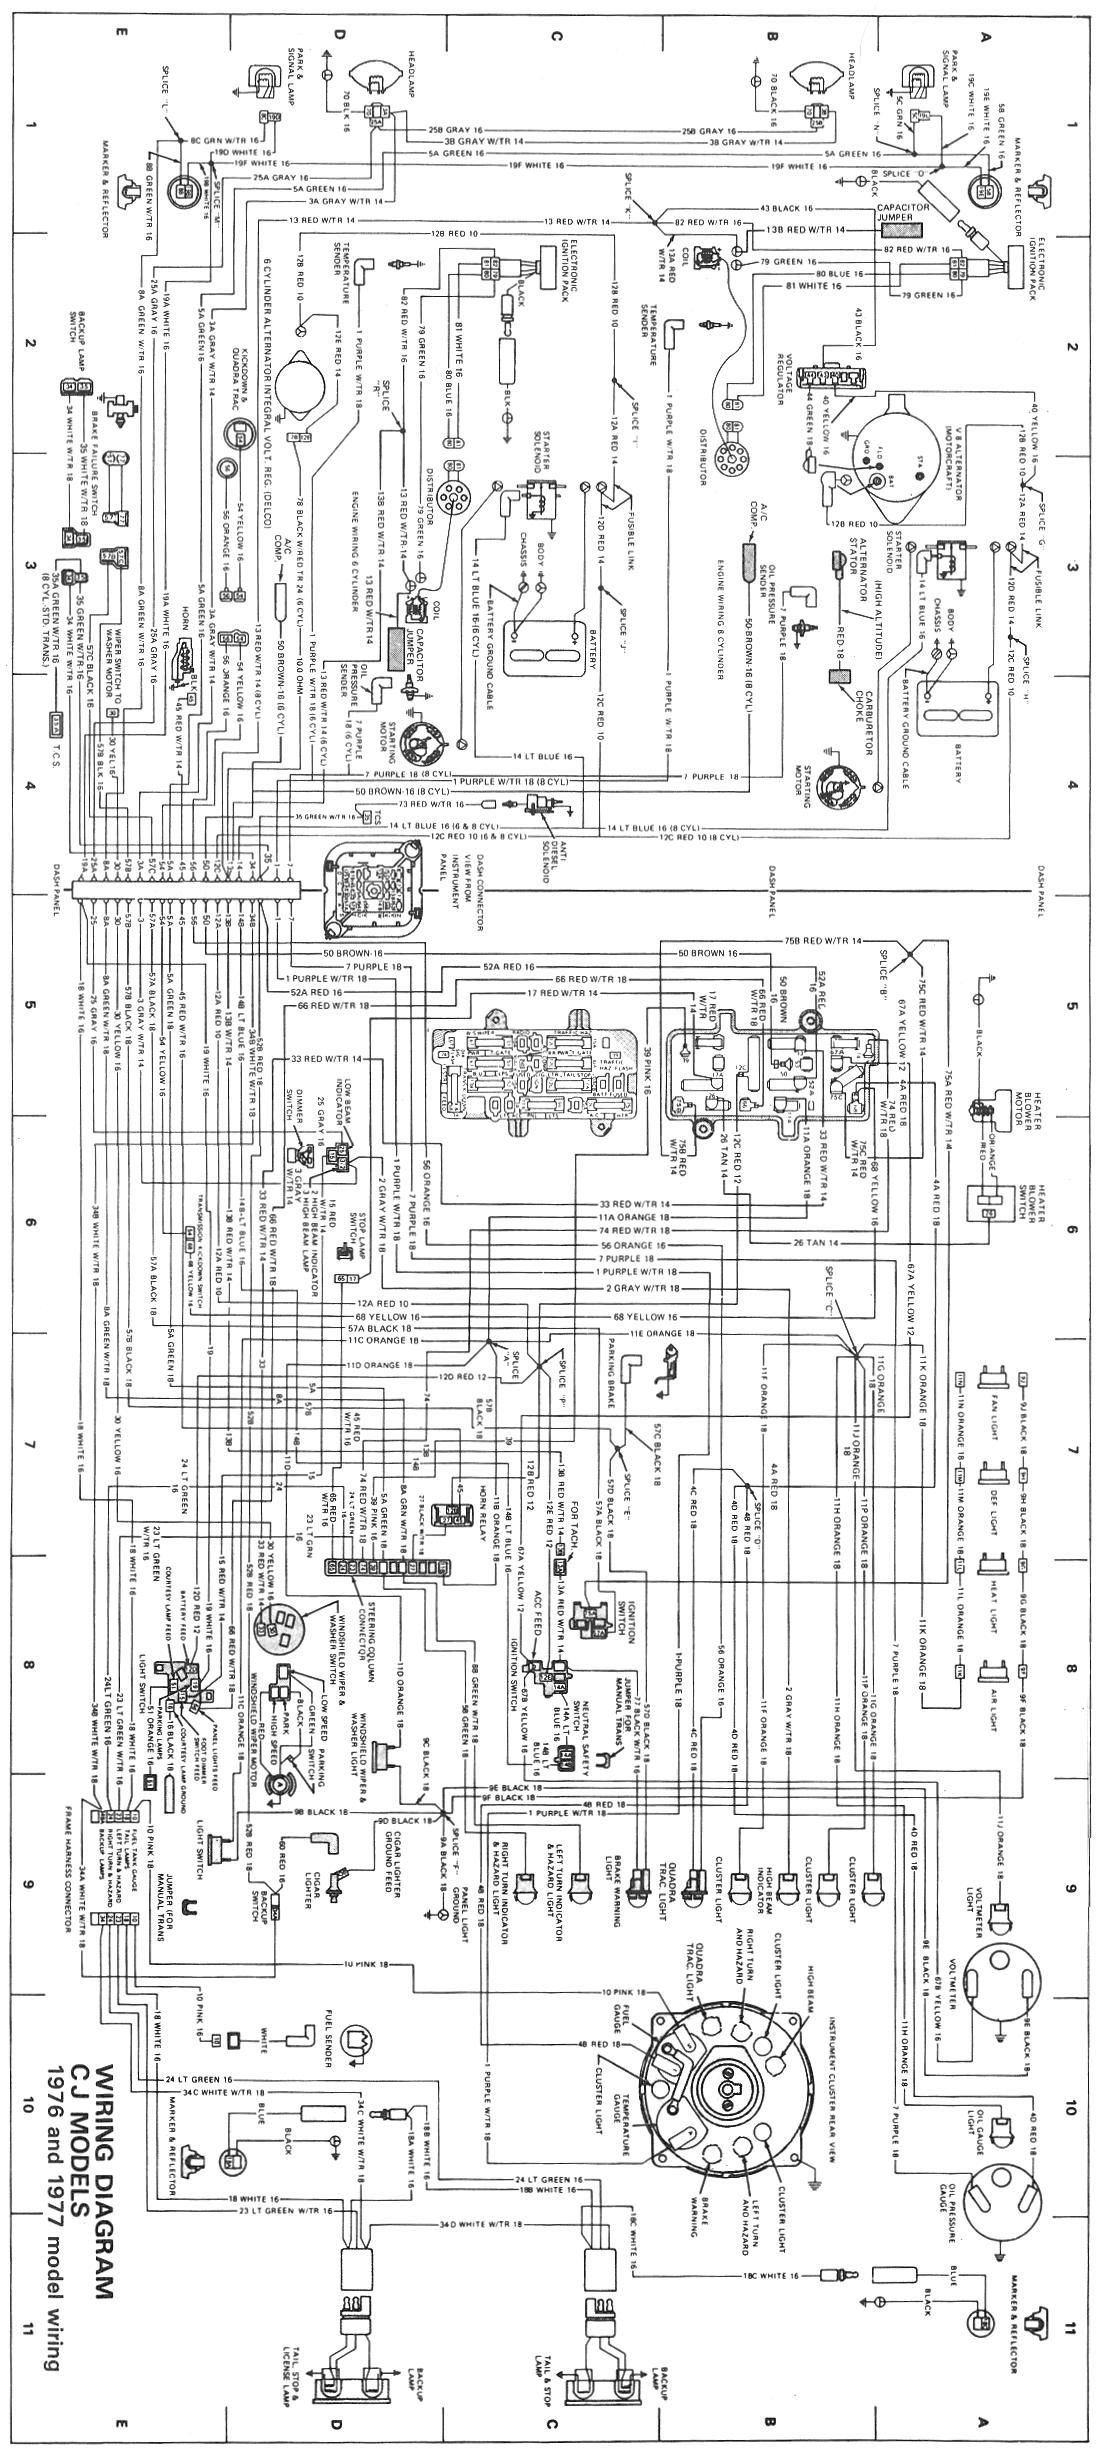 8d25ded6e3673519e155875e09844e5e cj wiring diagram 1976 1977 jpg 1,100�2,459 pixels 1976 jeep cj5 CJ5 Wiring Harness Replacement at nearapp.co